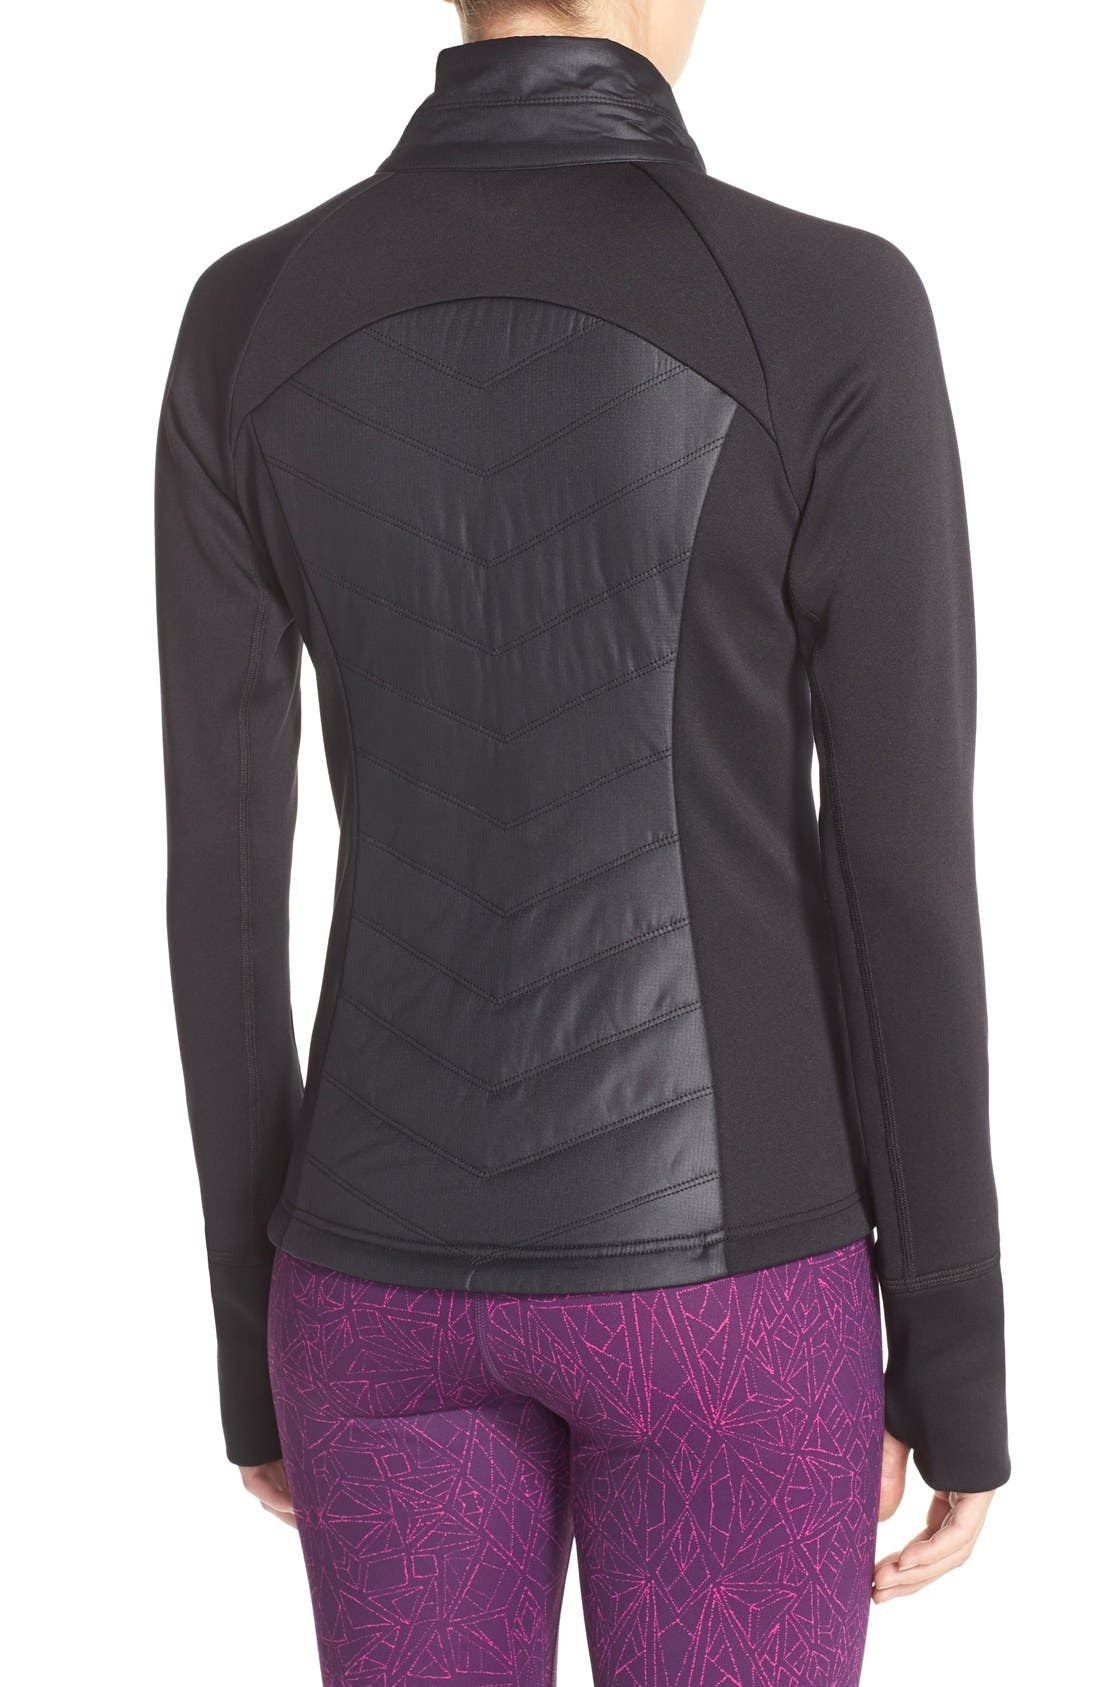 Zelfusion Reflective Quilted Jacket,                             Alternate thumbnail 8, color,                             001